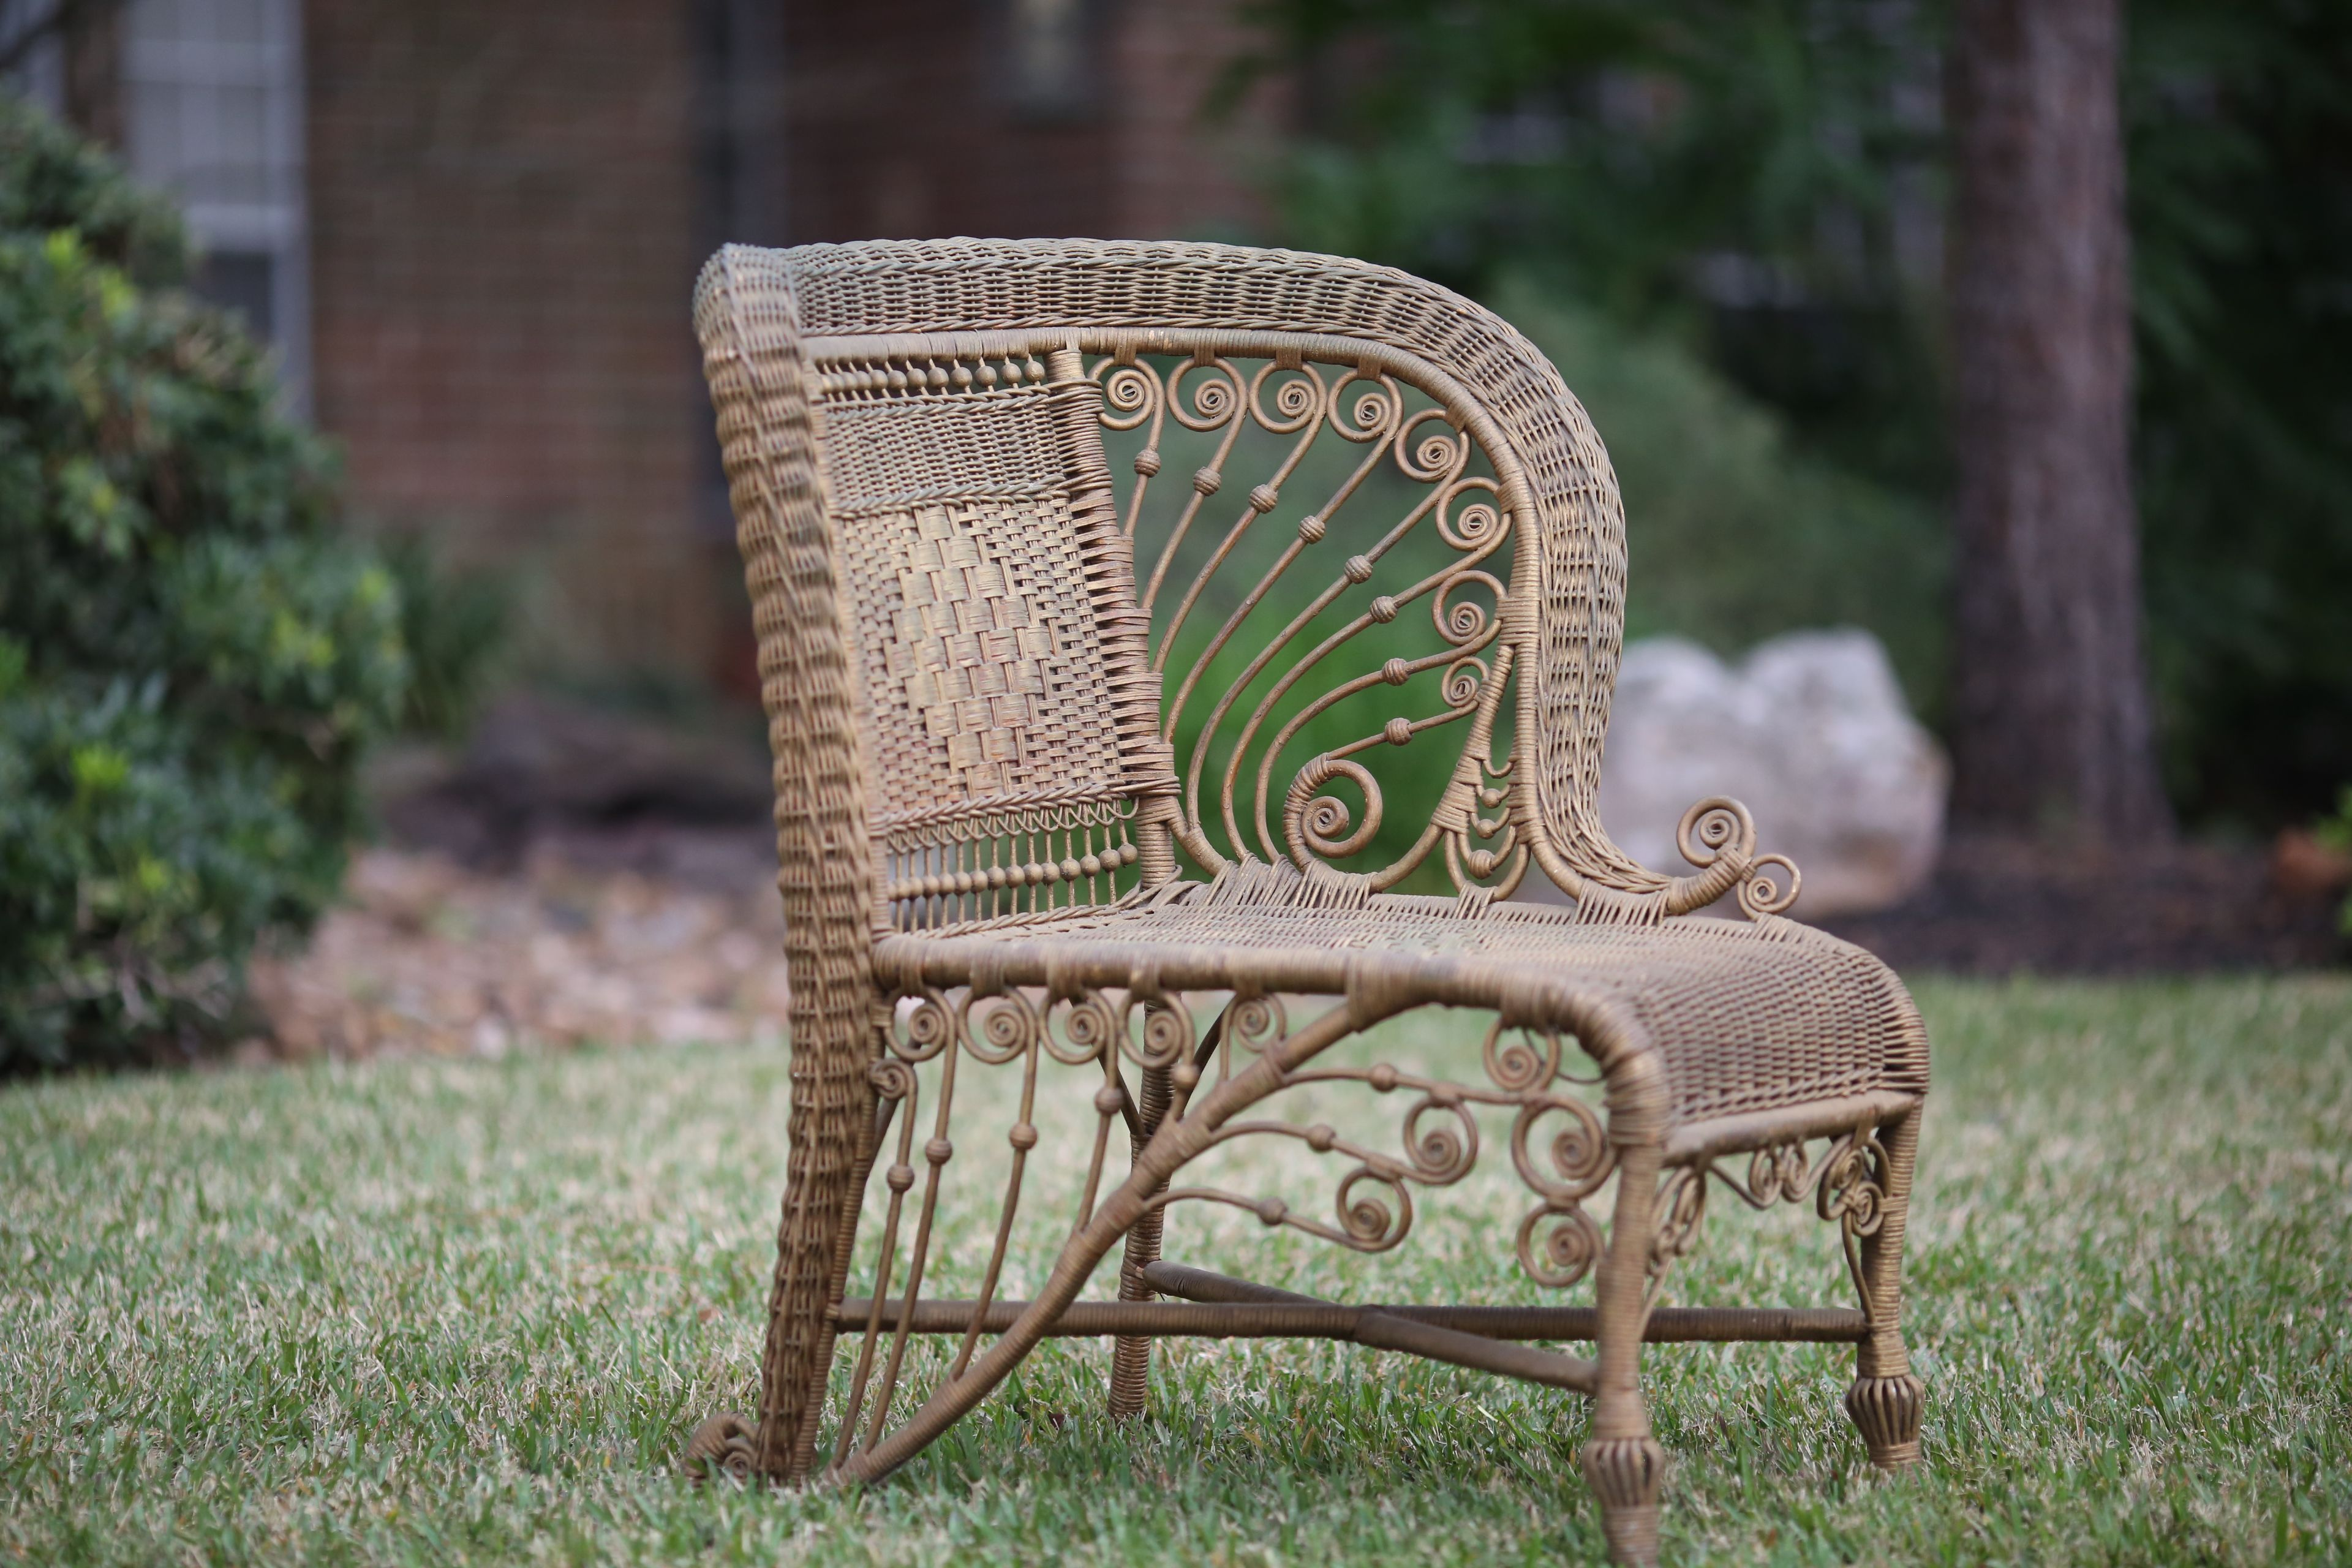 Rent Some Vintage Wicker Chair